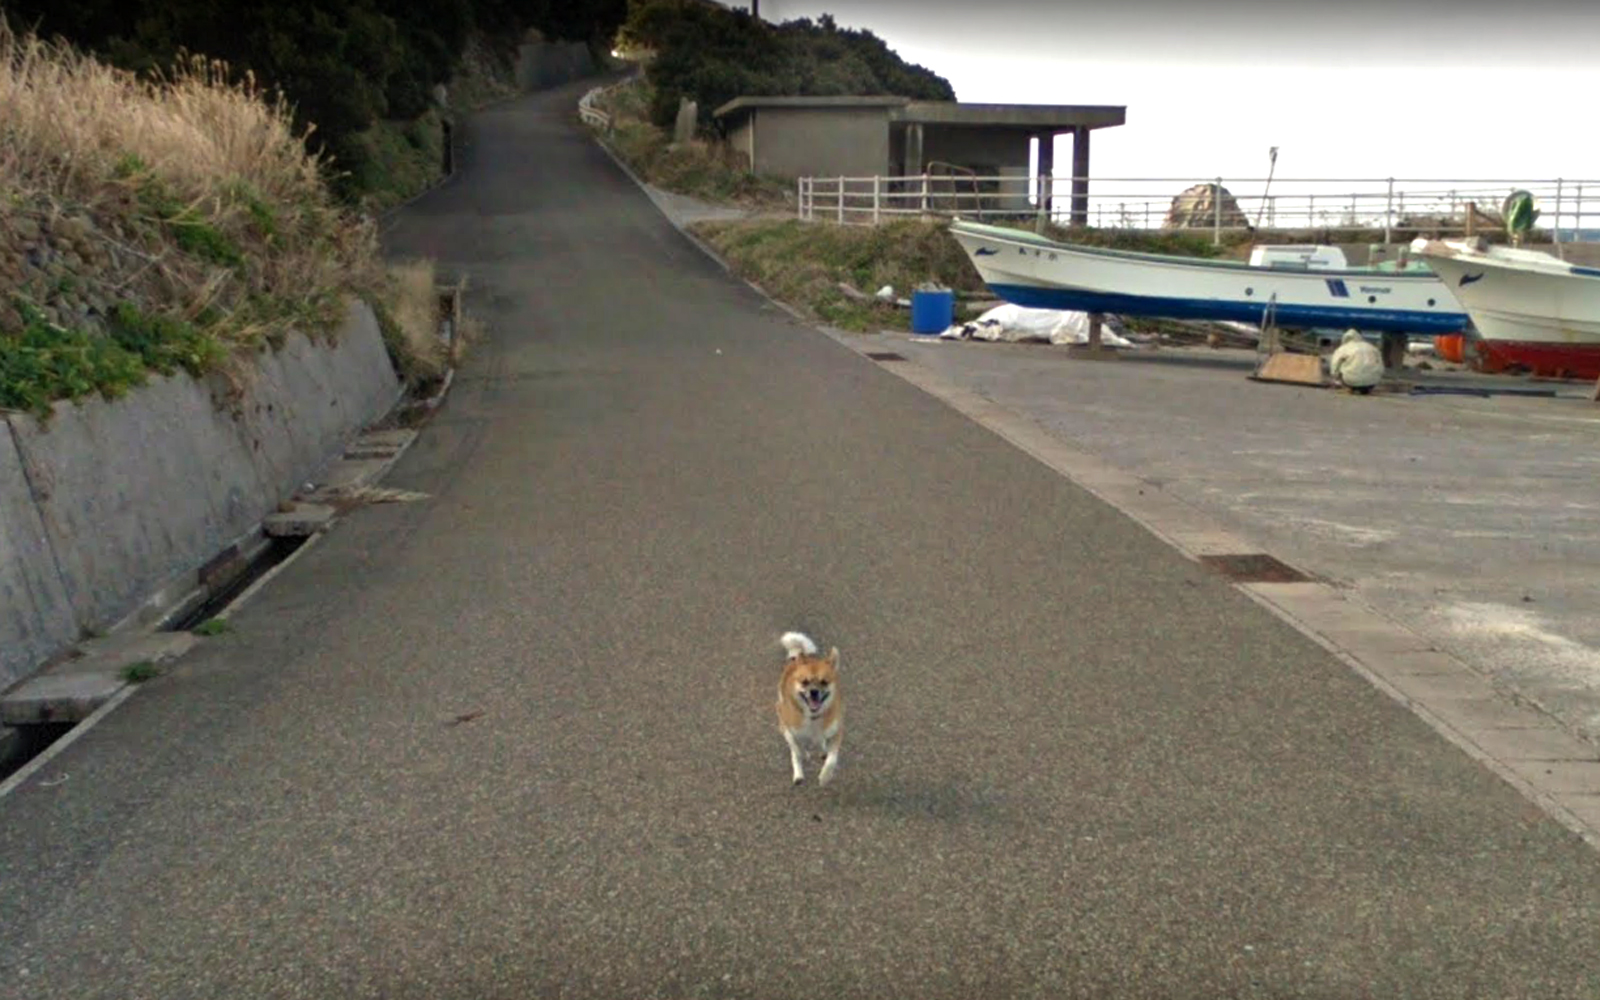 Dog chasing Google Streetview Car